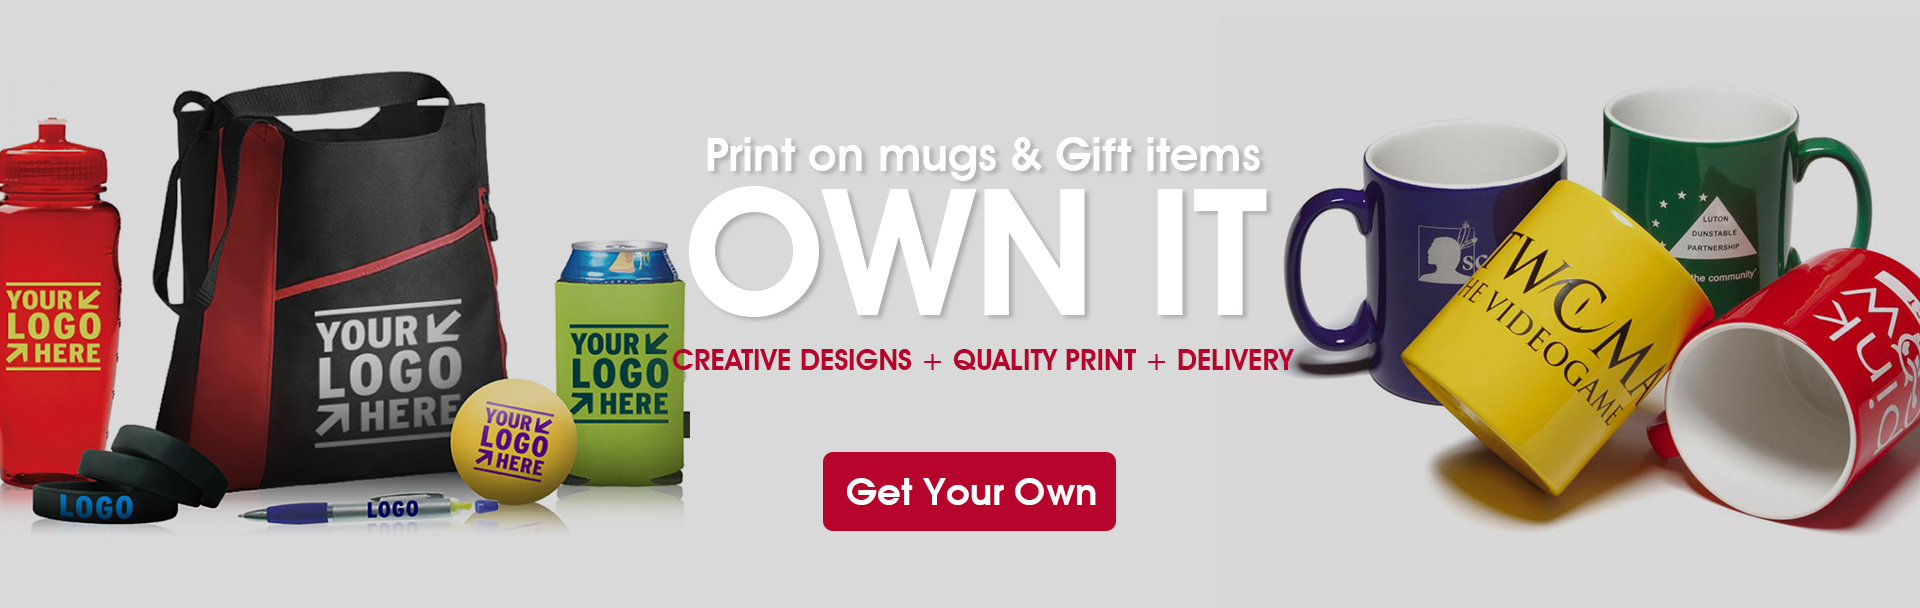 Corporate Gifts Printing in gurgaon sector 16